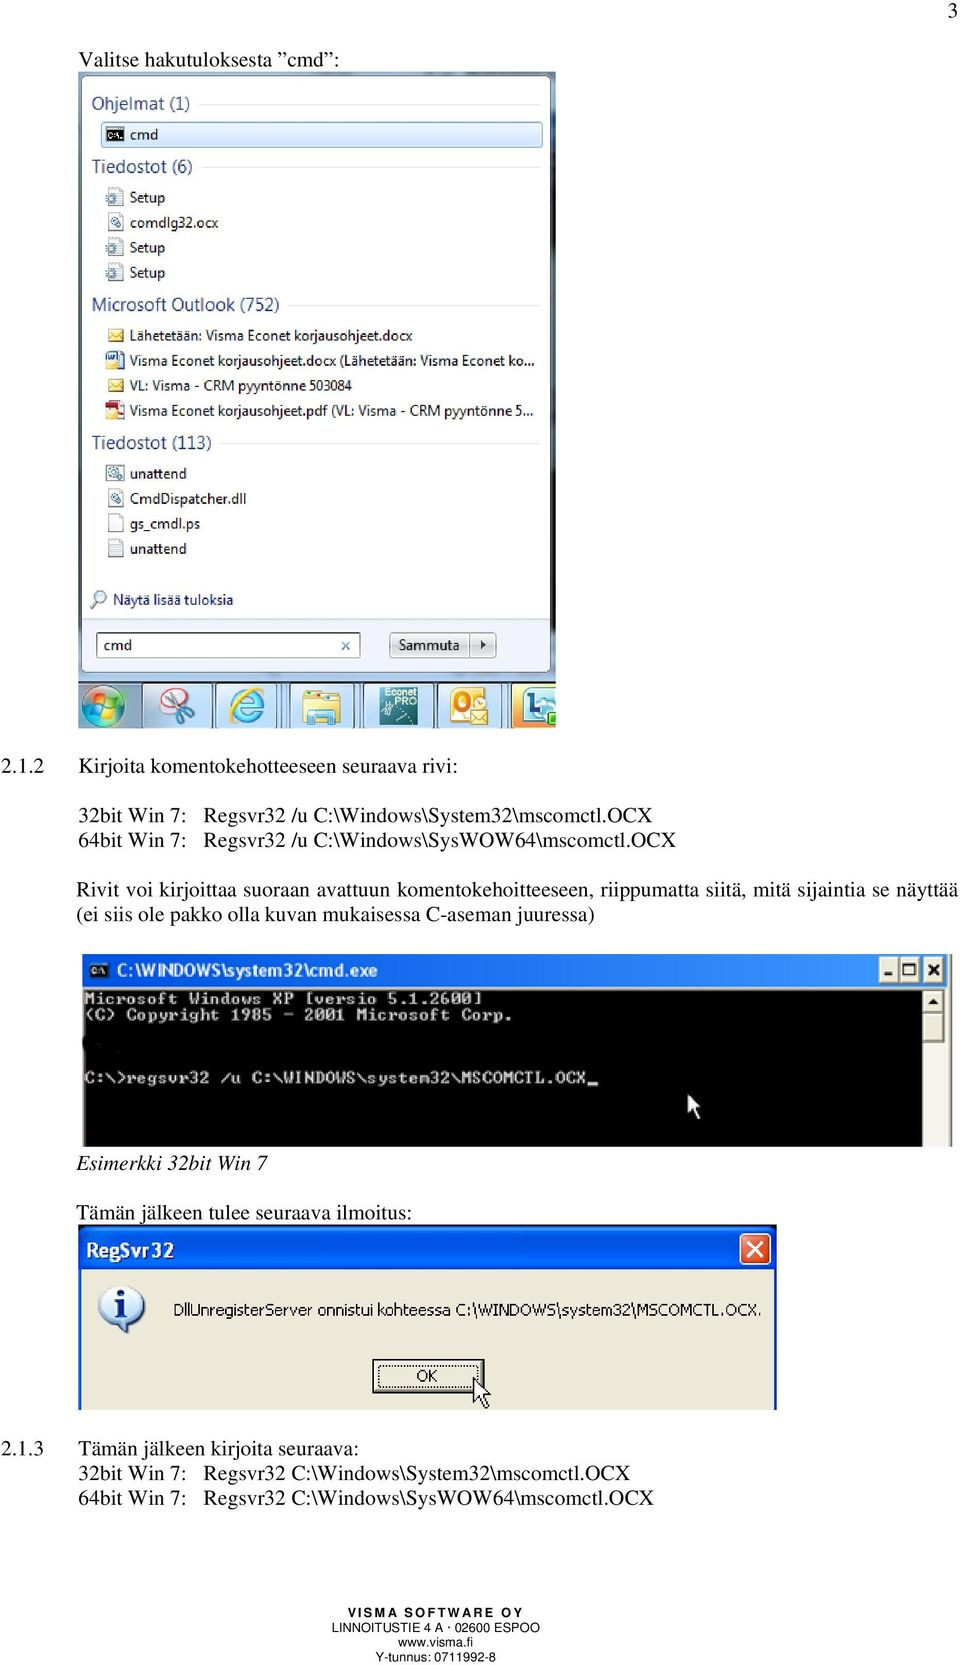 OCX 64bit Win 7: Regsvr32 /u C:\Windows\SysWOW64\mscomctl.